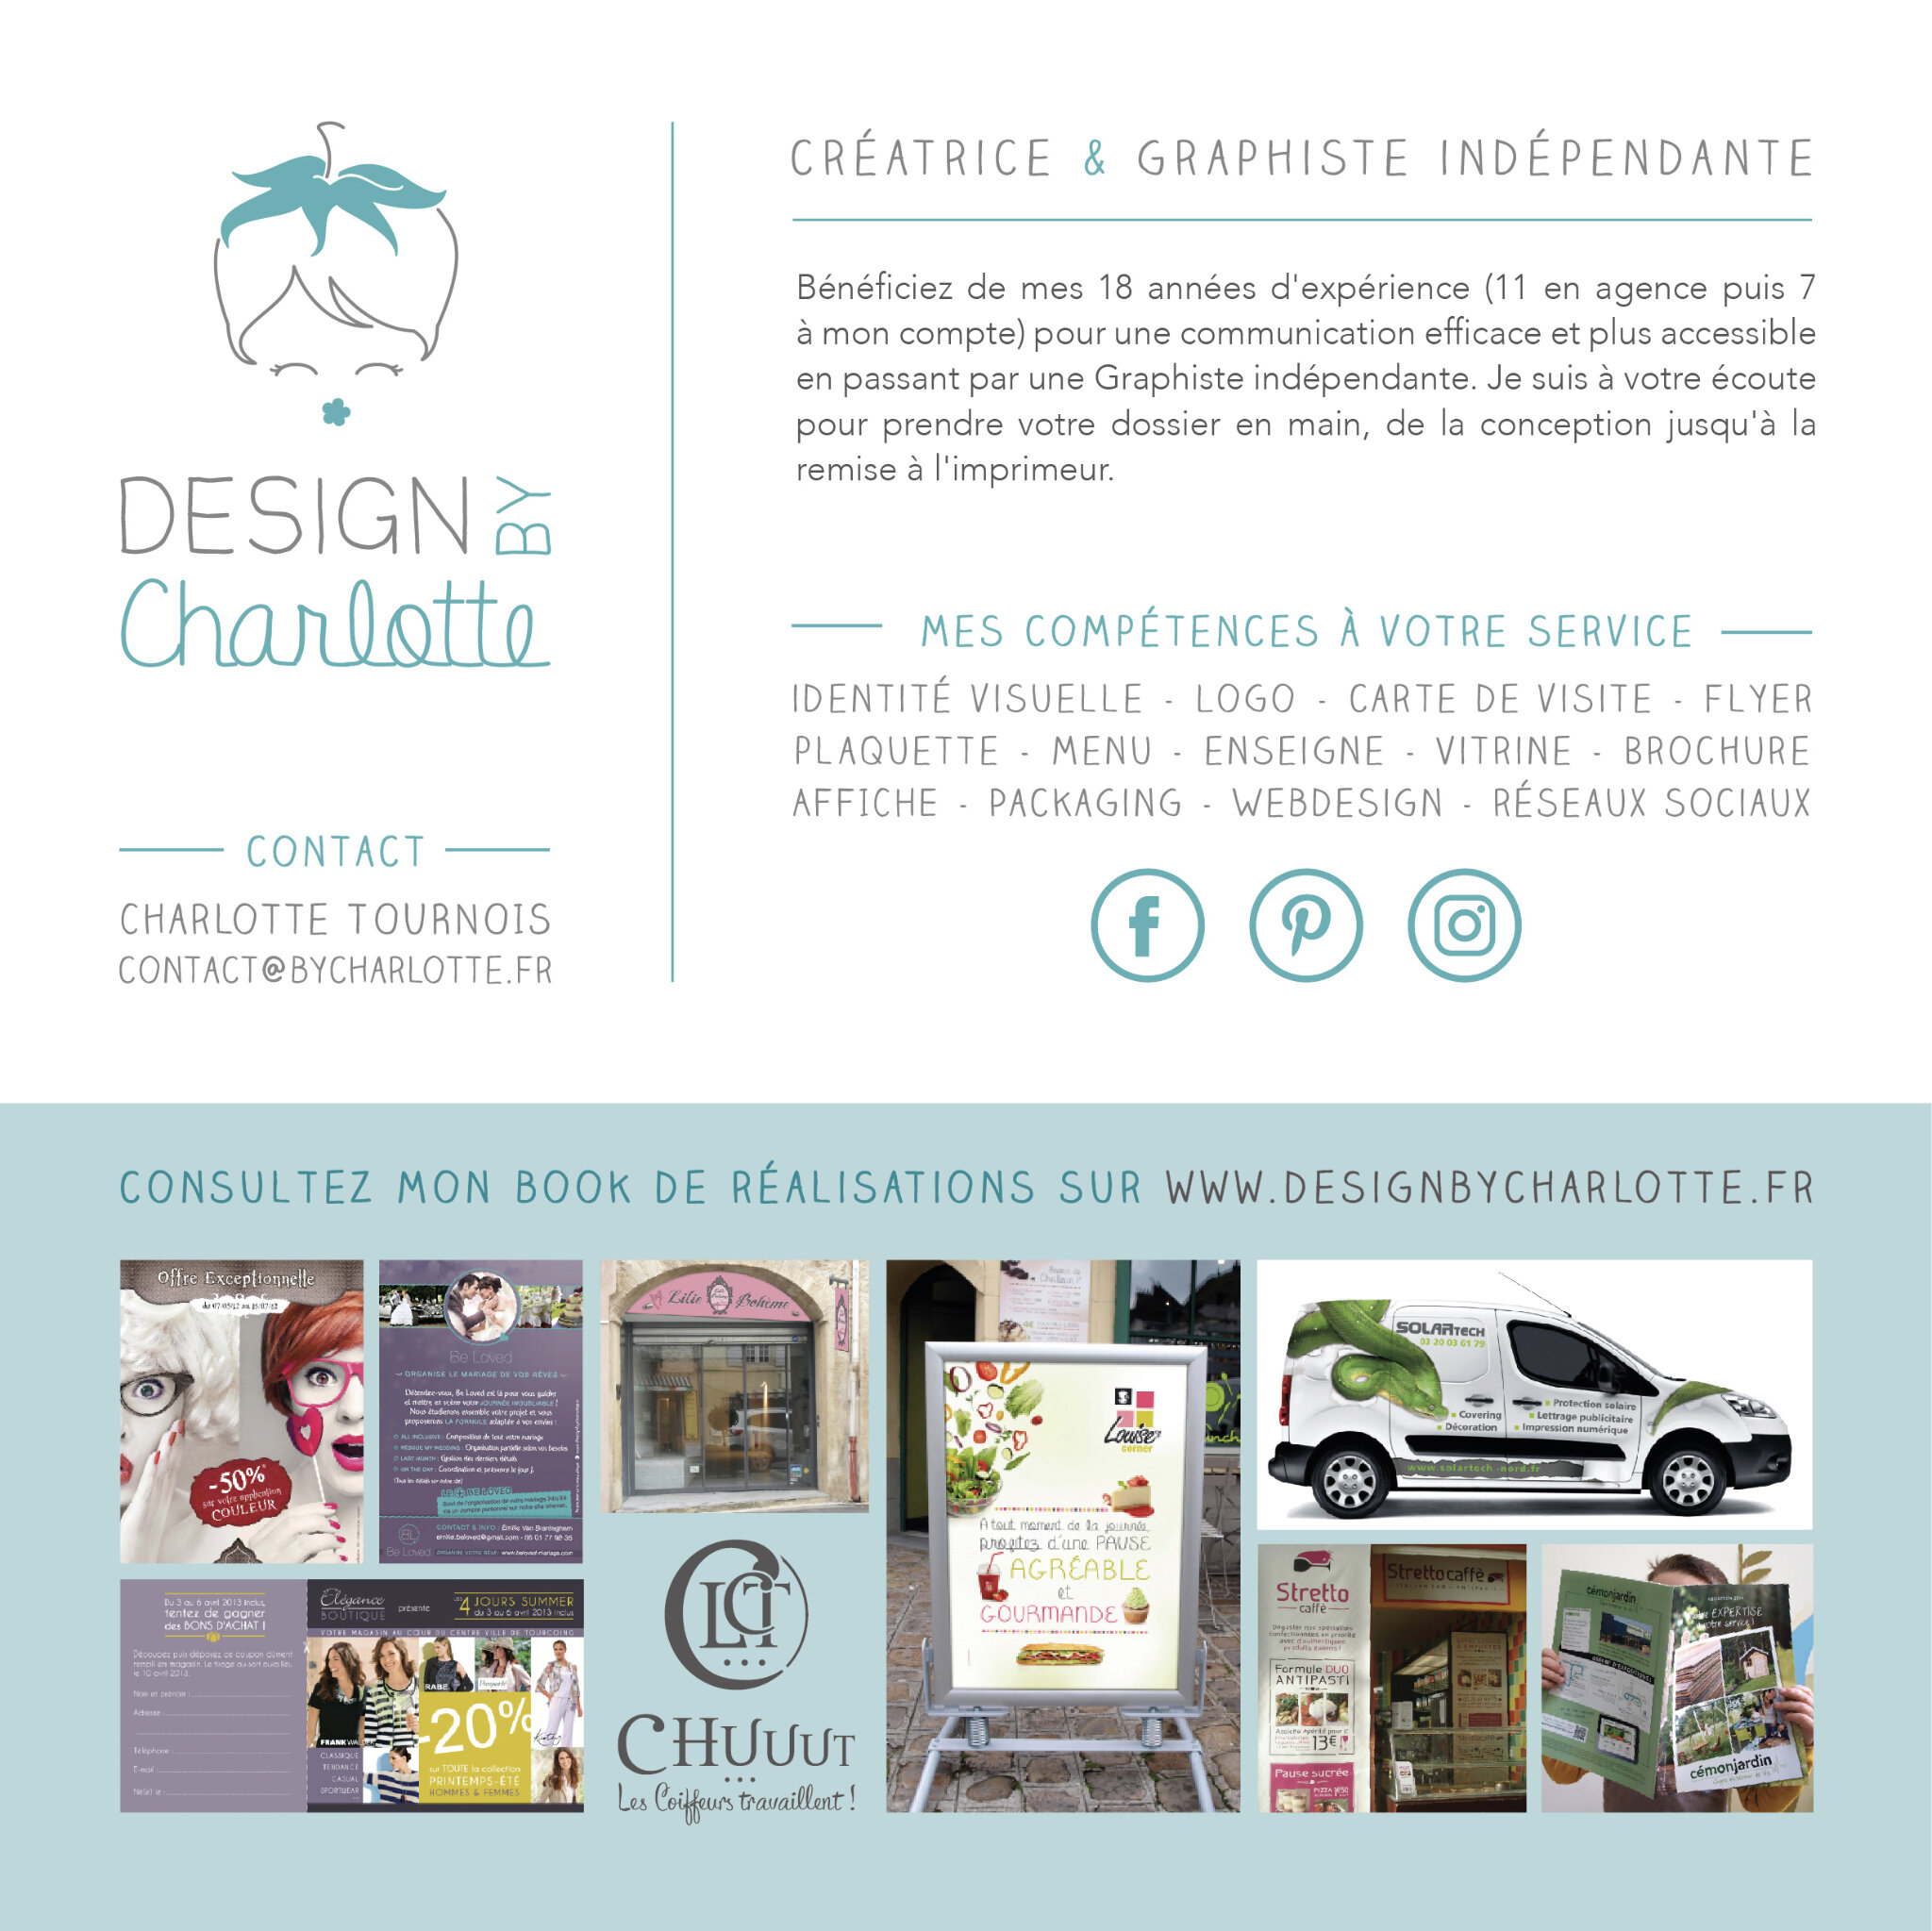 design by charlotte  graphiste ind u00e9pendante en freelance pour votre communication print  u0026 web